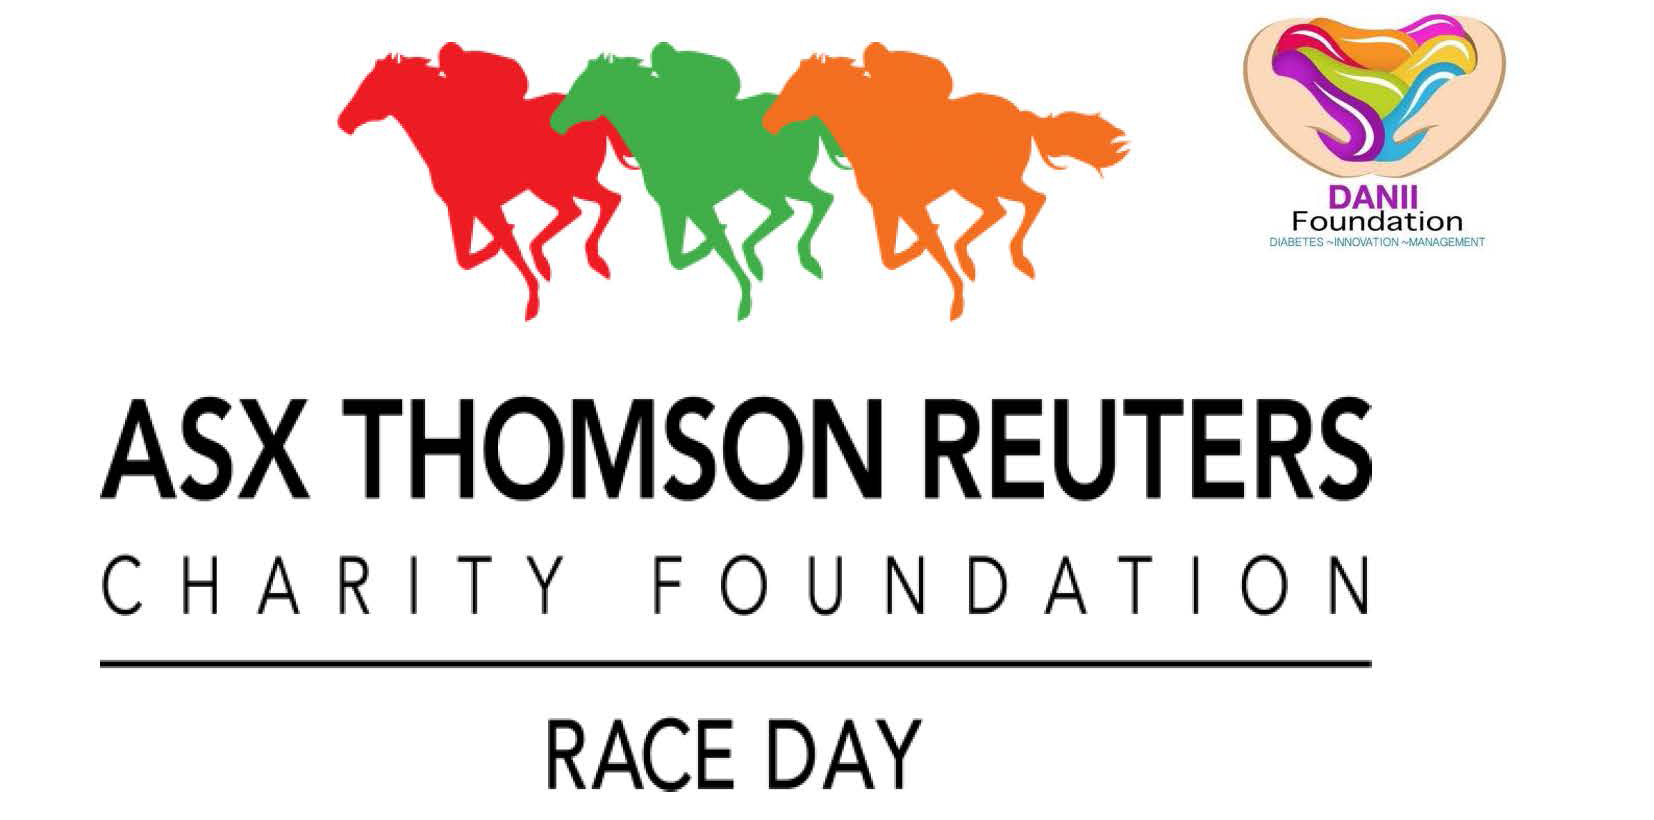 26AUG17_ASX Thomson Reuters Race Day_Page_1